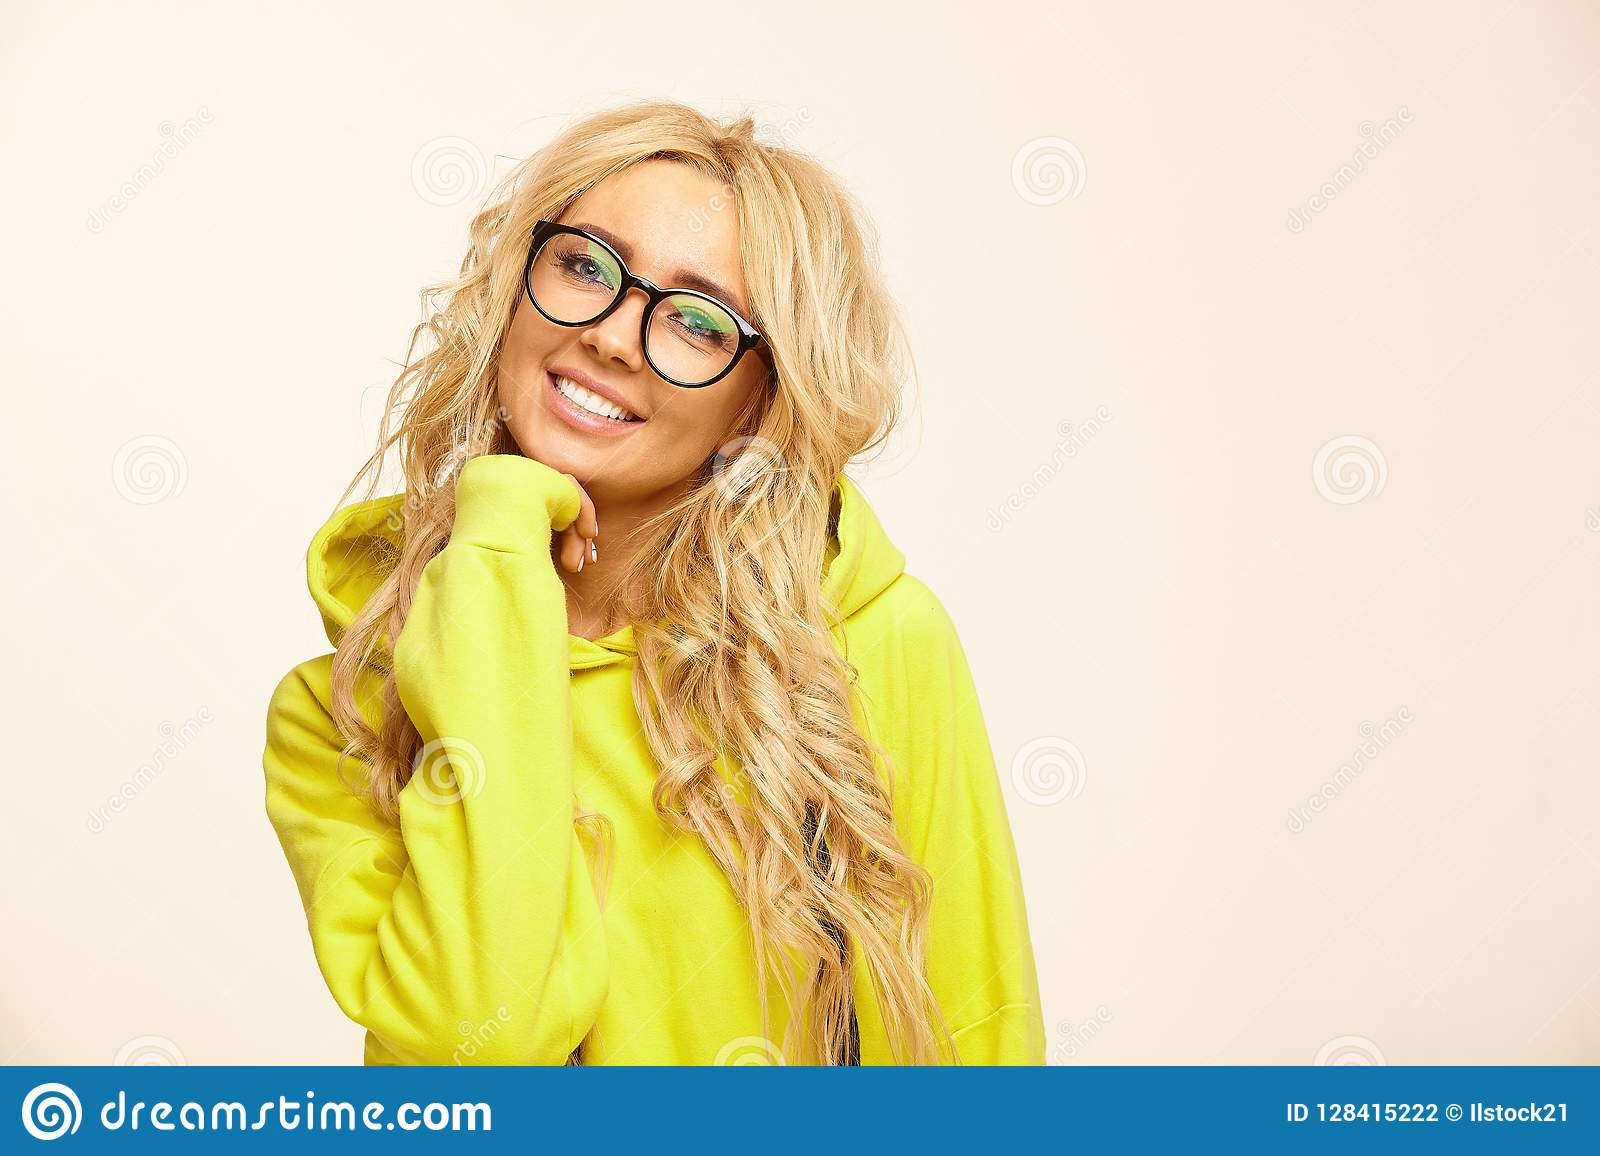 545b2656446 Isolated Portrait Of Happy Caucasian Women With Blonde Hair